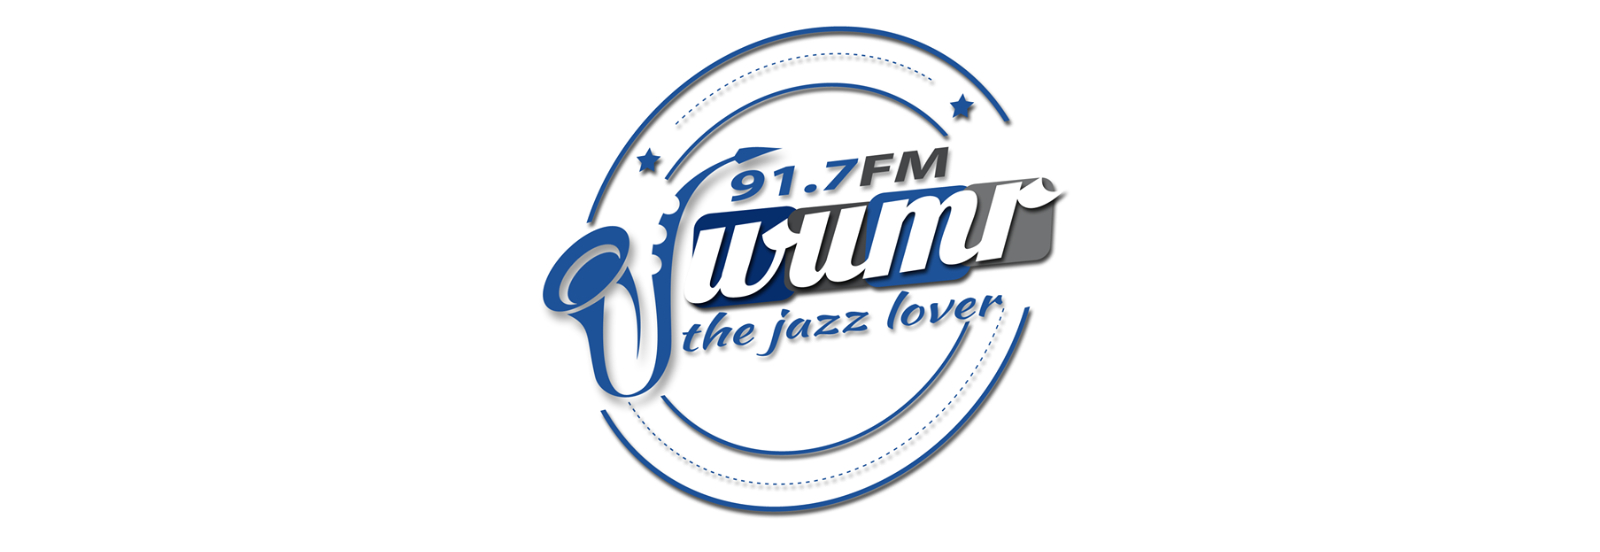 WUMR is the only all-jazz outlet in the Memphis Metro Area.